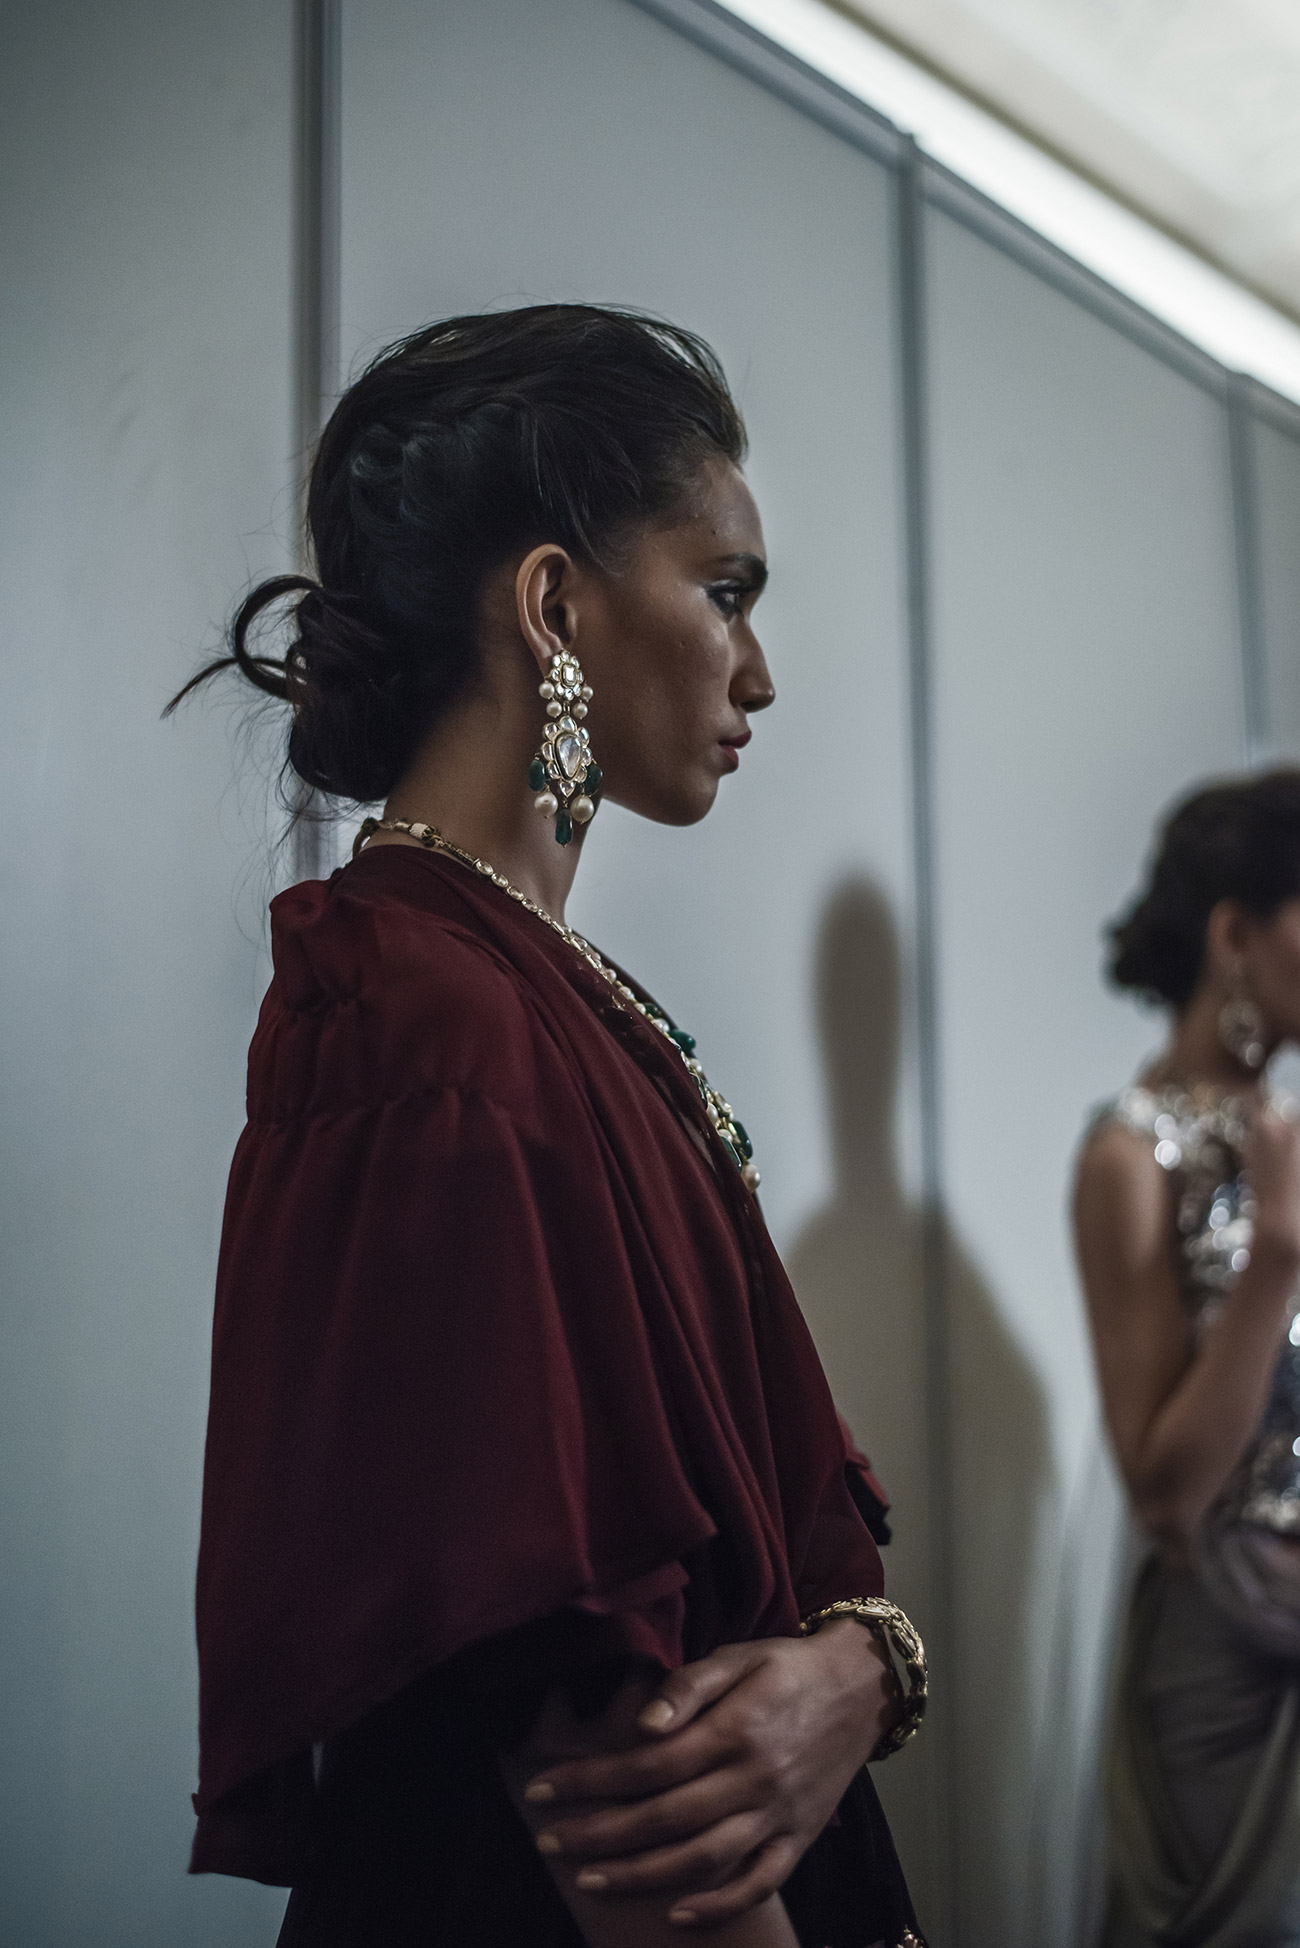 Backstage FDCI India Couture Week 2016 Photo by RAWKY KSH 4